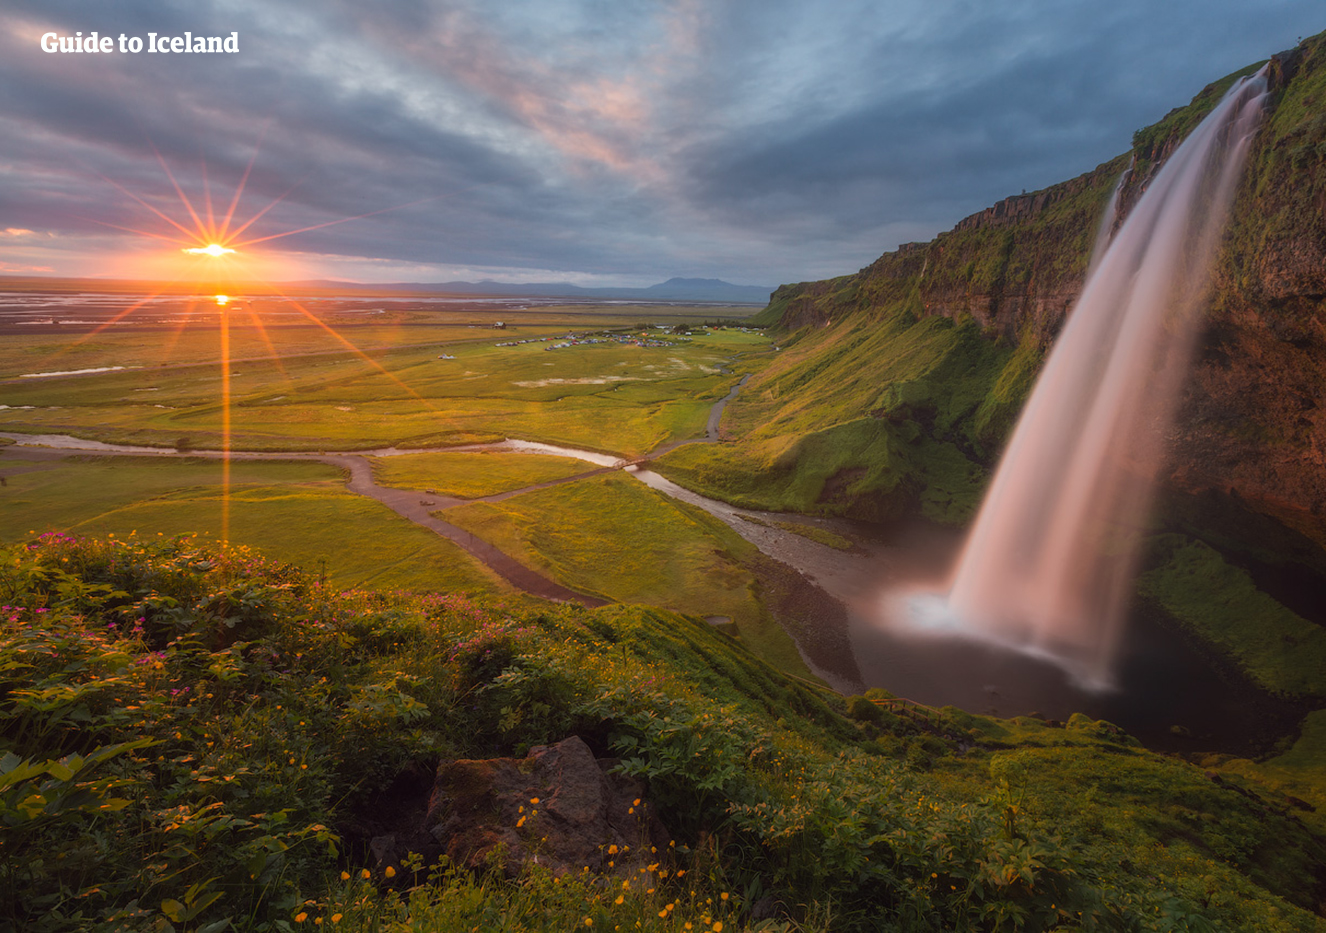 Seljalandsfoss Waterfall, found on Iceland's picturesque South Coast.